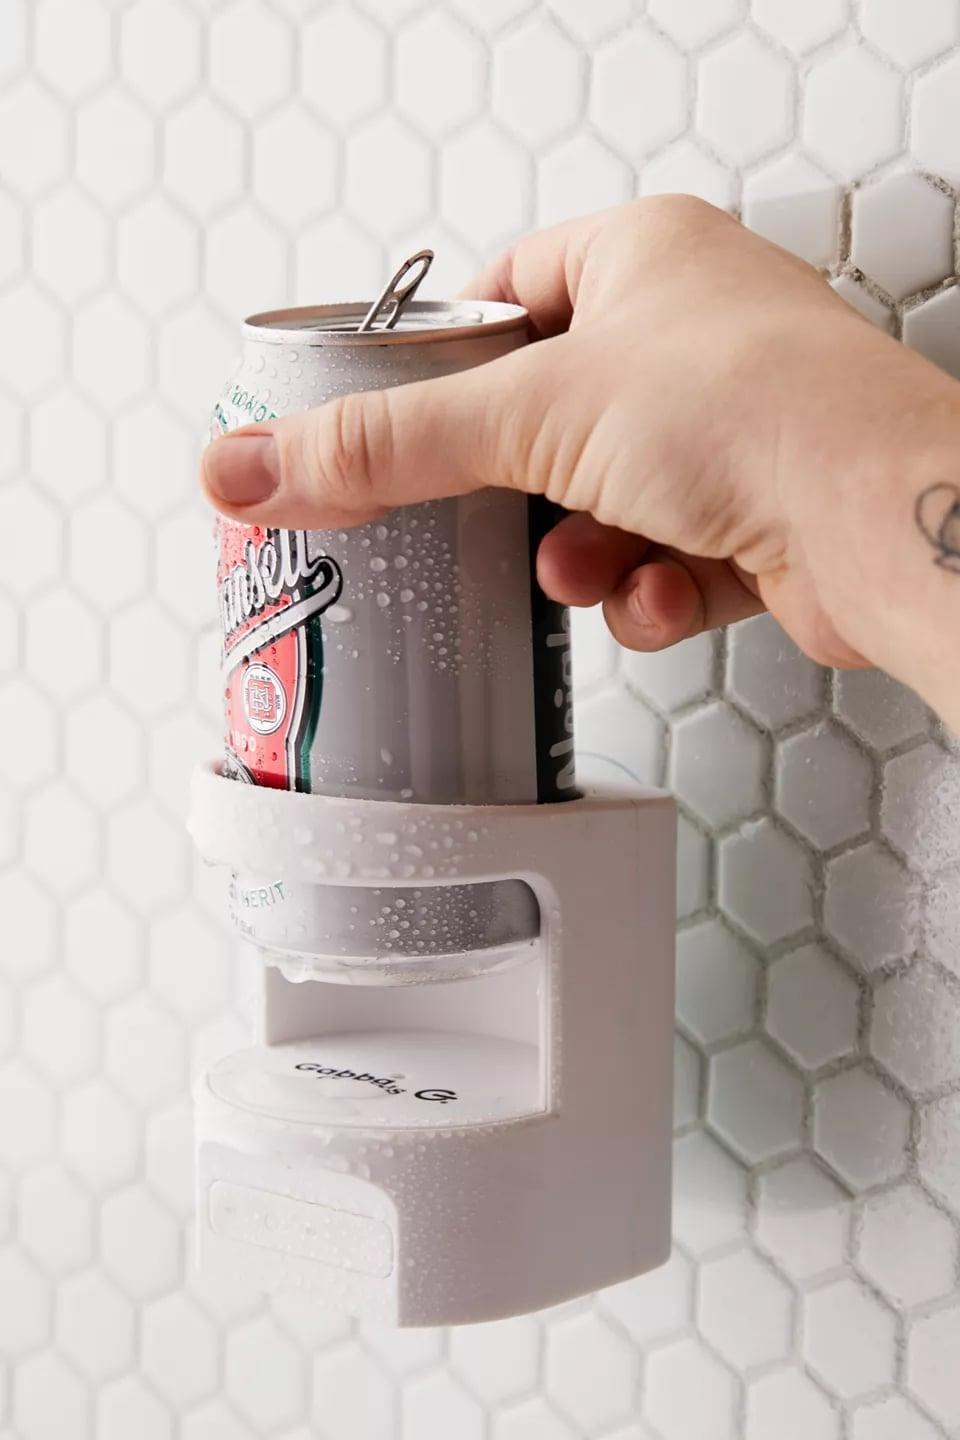 <p>They can have a relaxing bath or shower with the <span>Shower Beer Holder Bluetooth Speaker</span> ($20, originally $30). It's got a waterproof Bluetooth speaker that has up to four hours of playtime in a single charge. It's a gadget they'll use every day. </p>